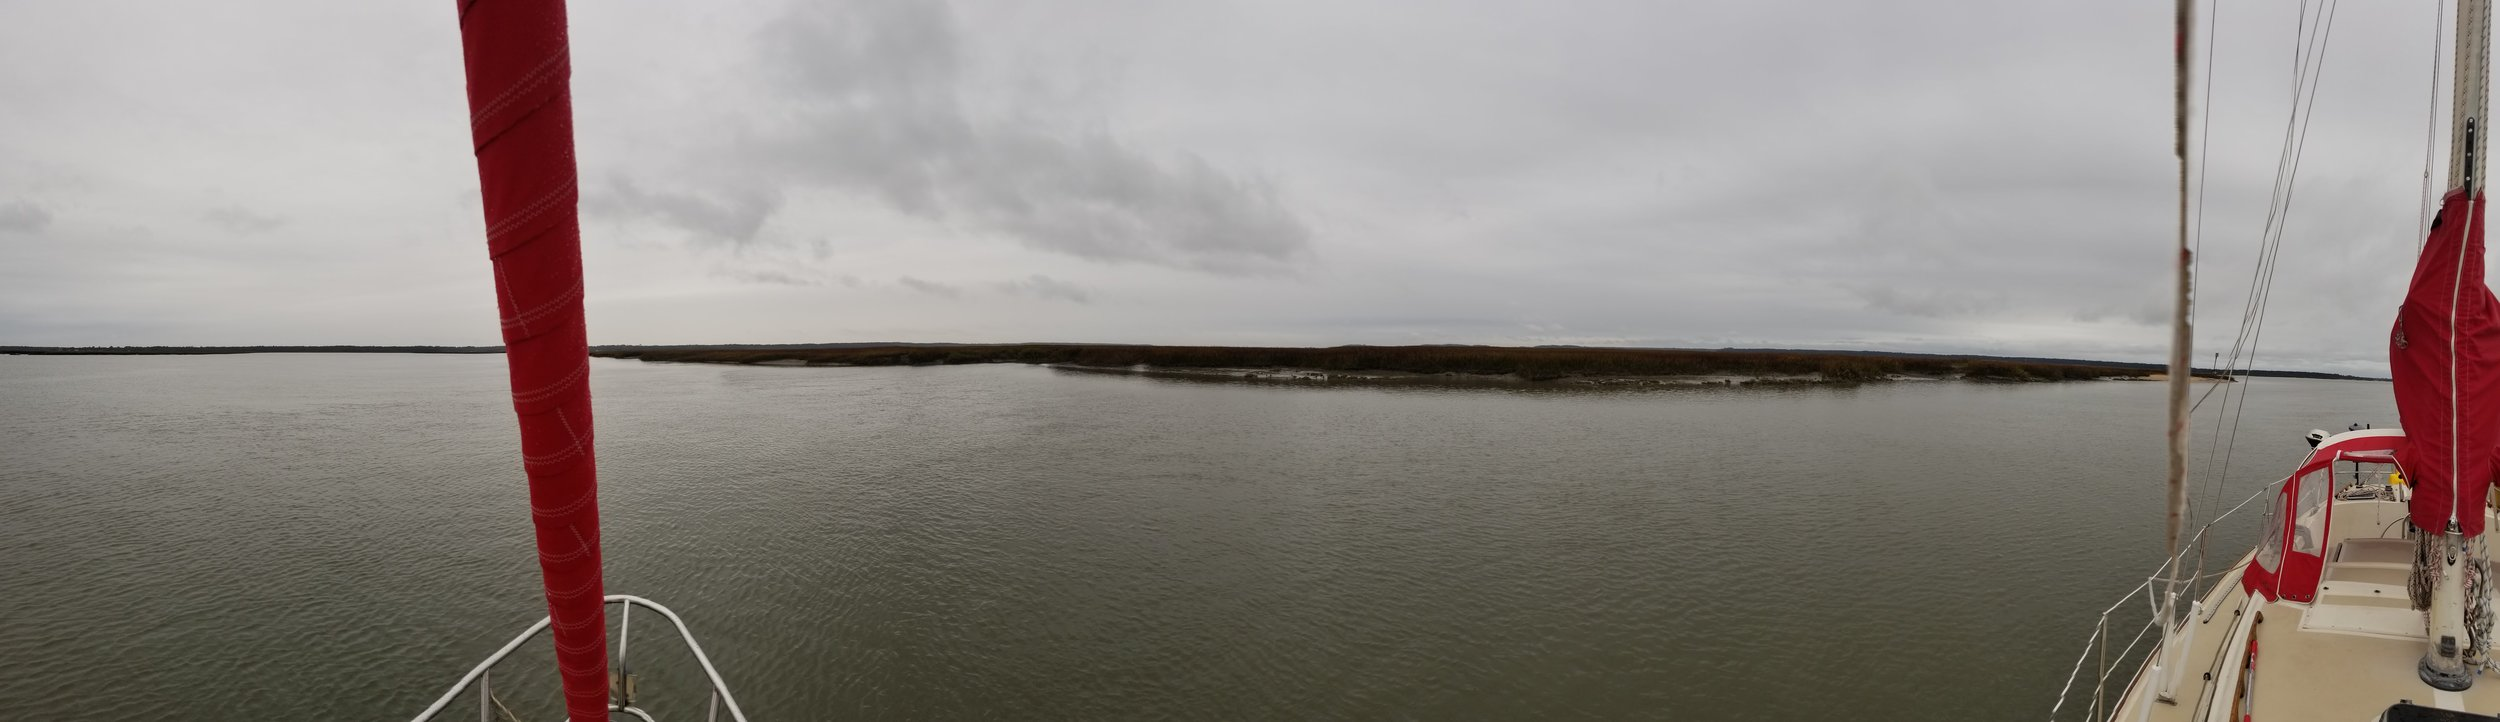 Anchored in the Bear River surrounded by marshland without any signs of civilization.